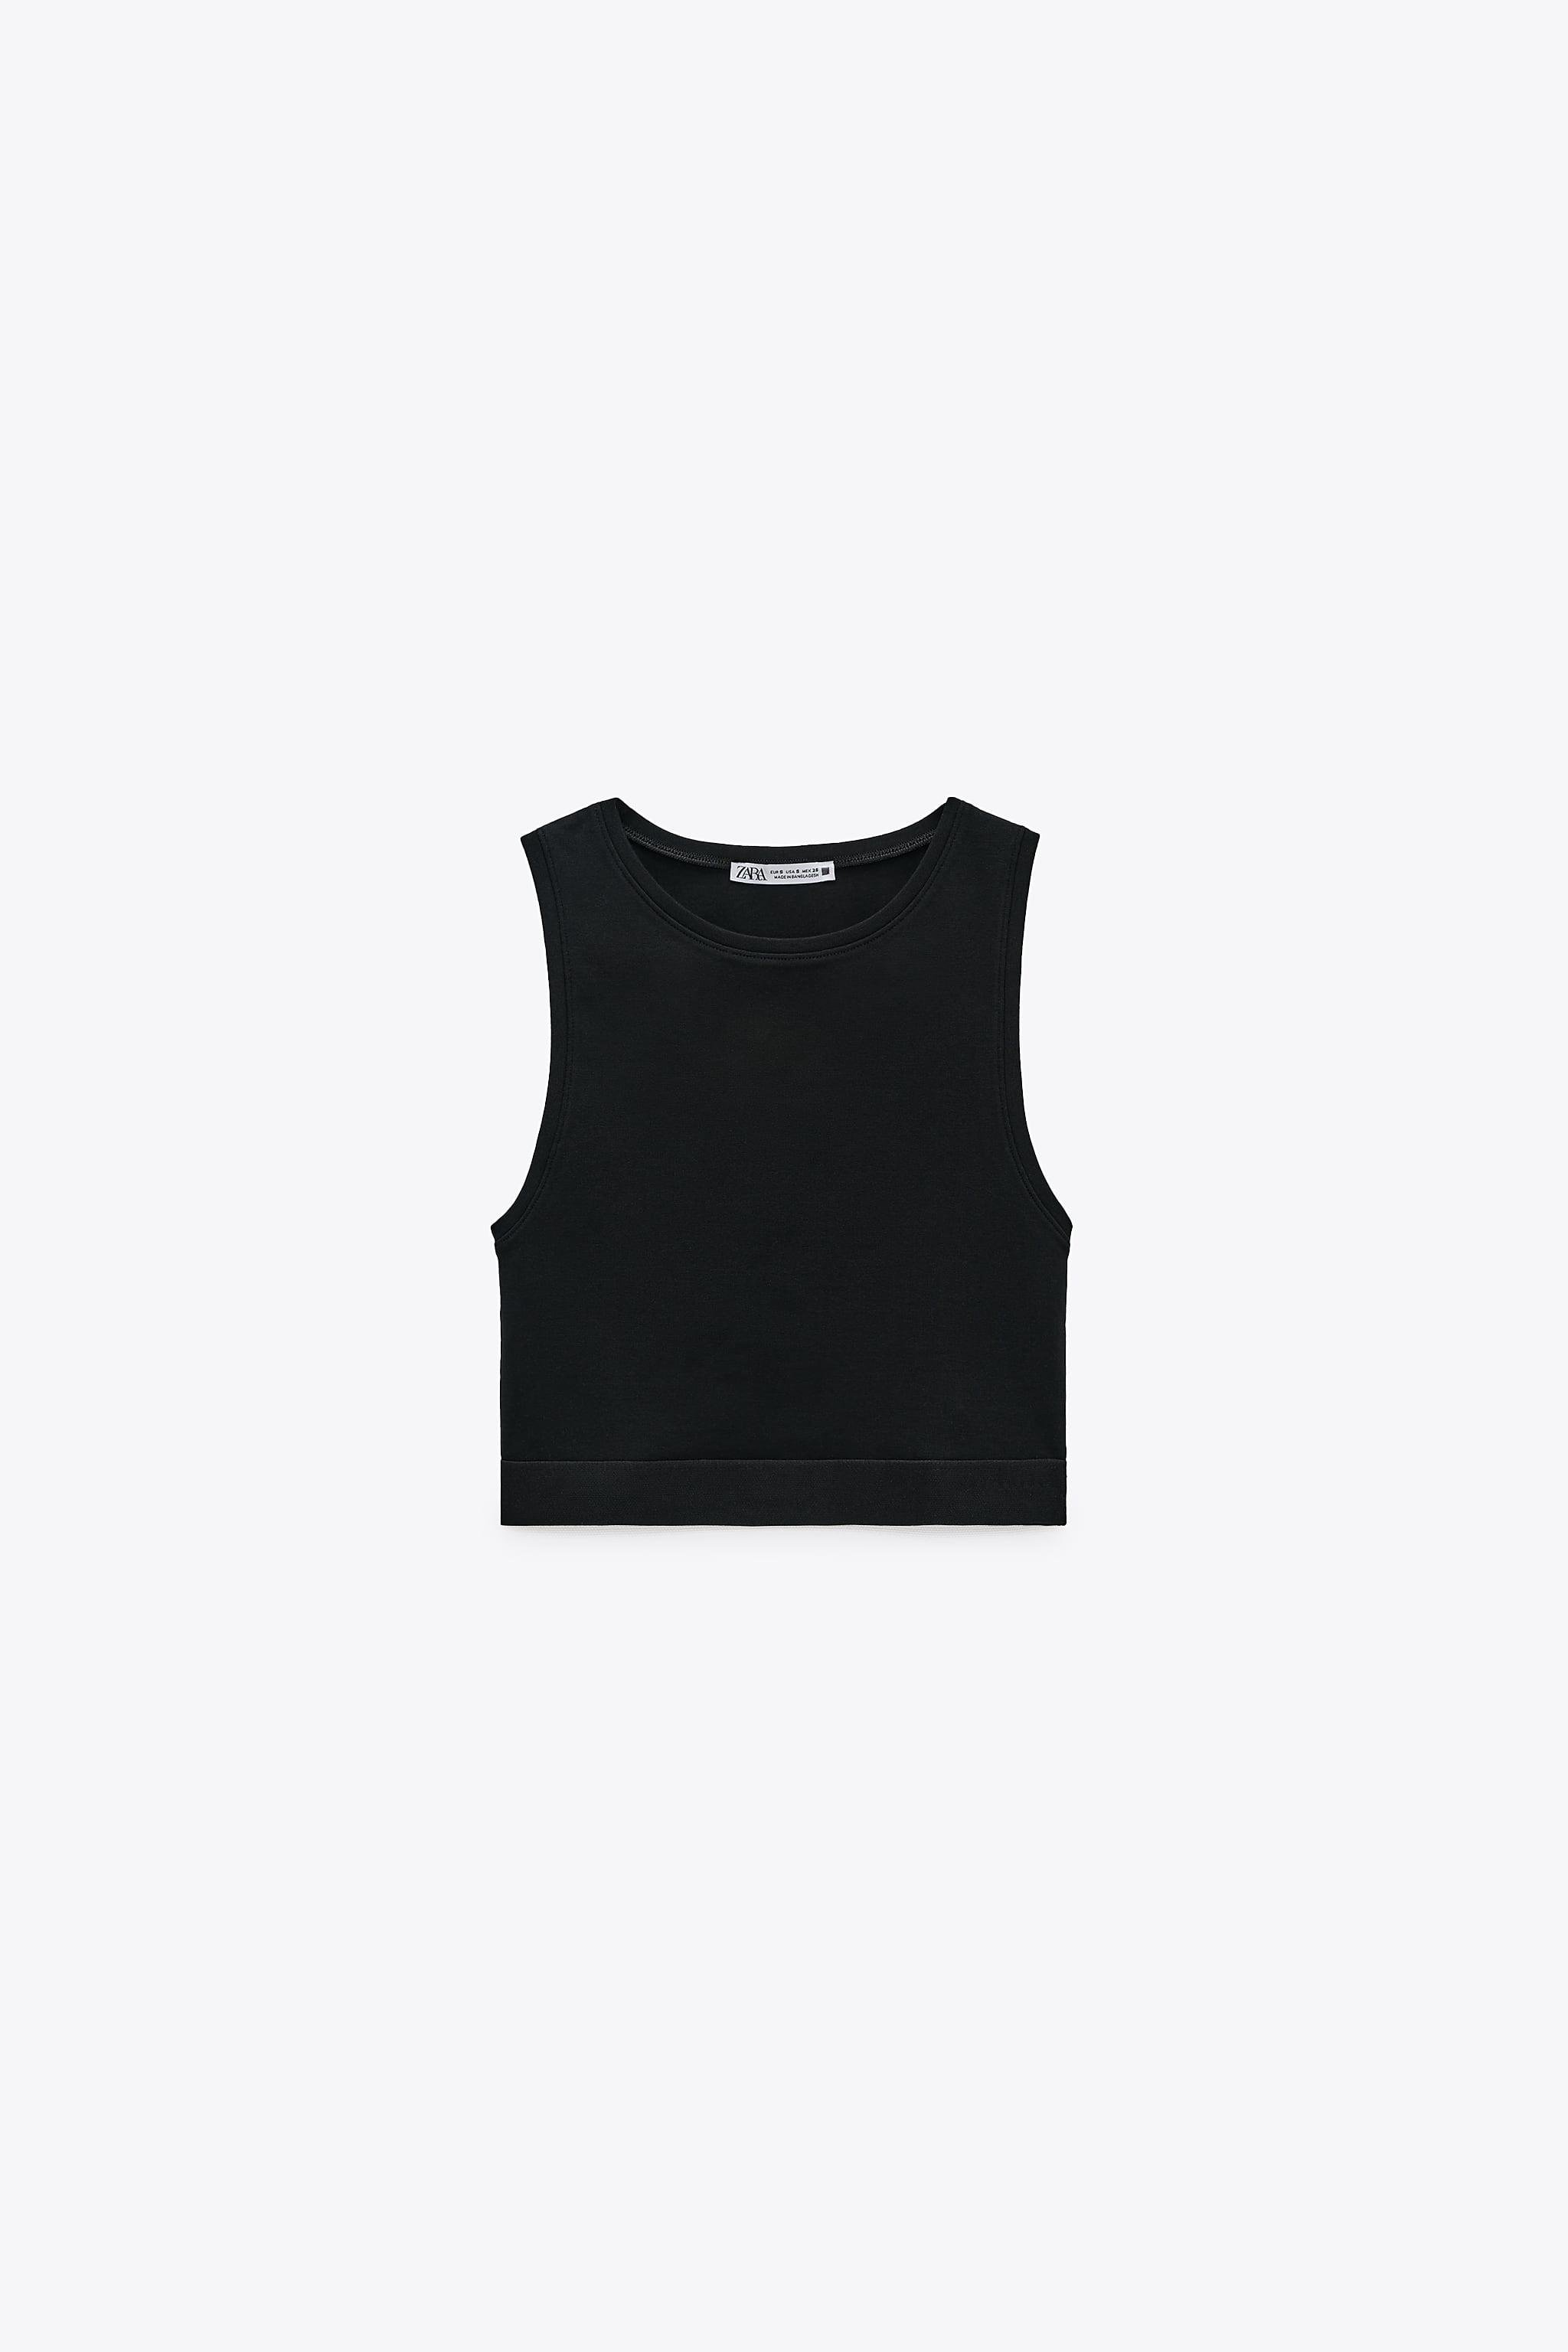 HIGH NECK CROPPED TOP 5